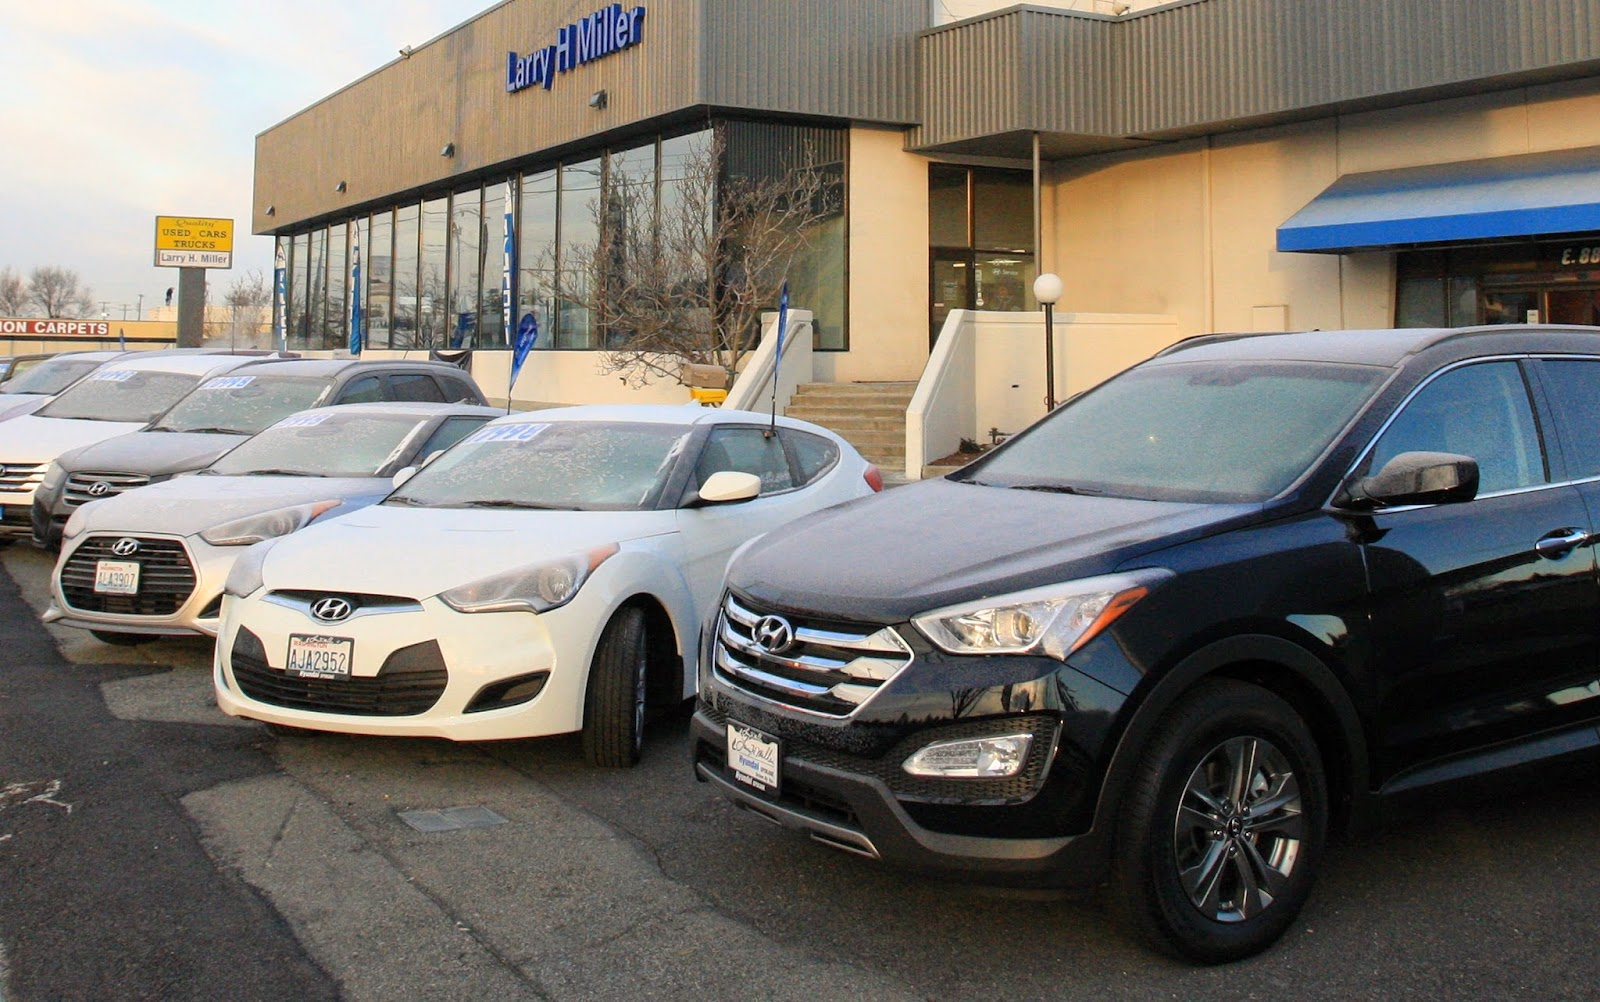 larry h miller hyundai to hold 5 dollar use car sell off larry h miller hyundai spokane. Black Bedroom Furniture Sets. Home Design Ideas